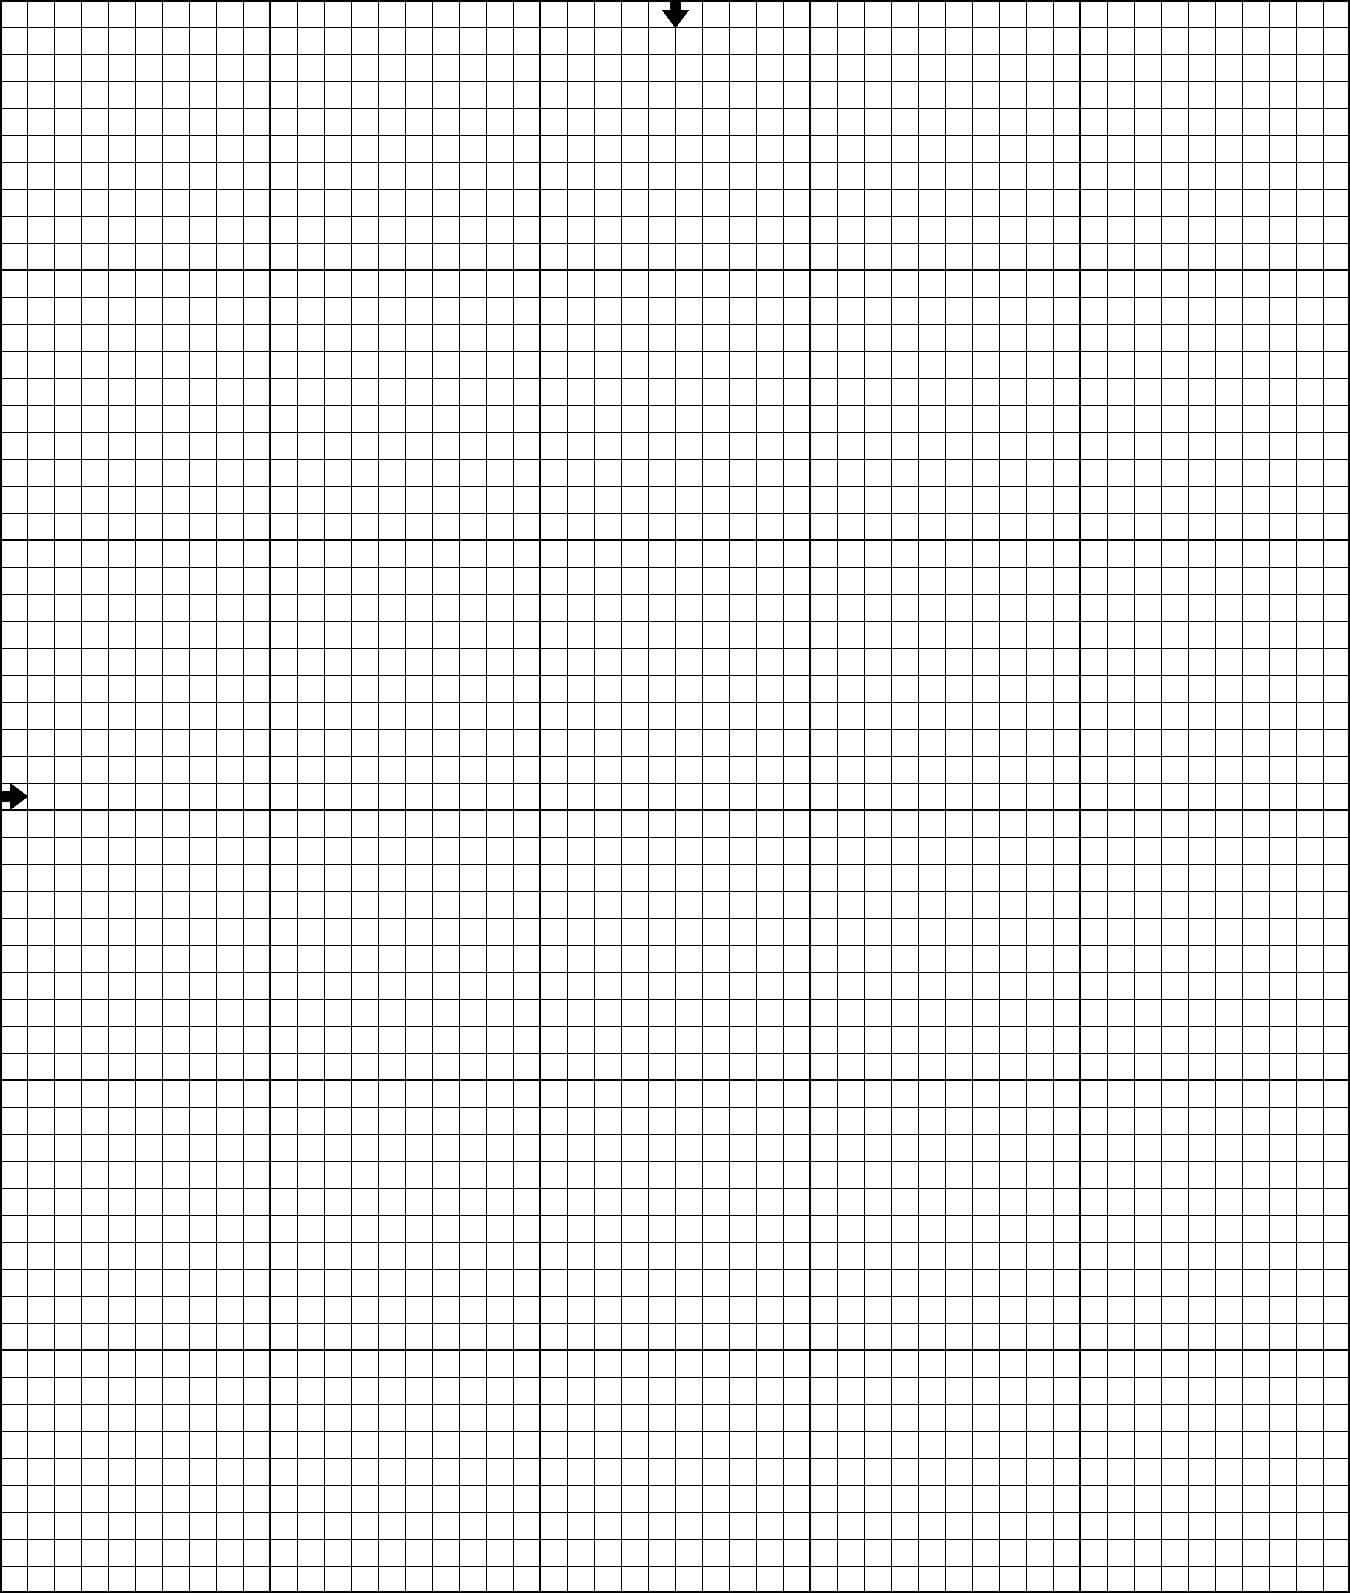 Stitch Up A Happy Birthday Surprise For Yourself Or As A Within Blank Perler Bead Template